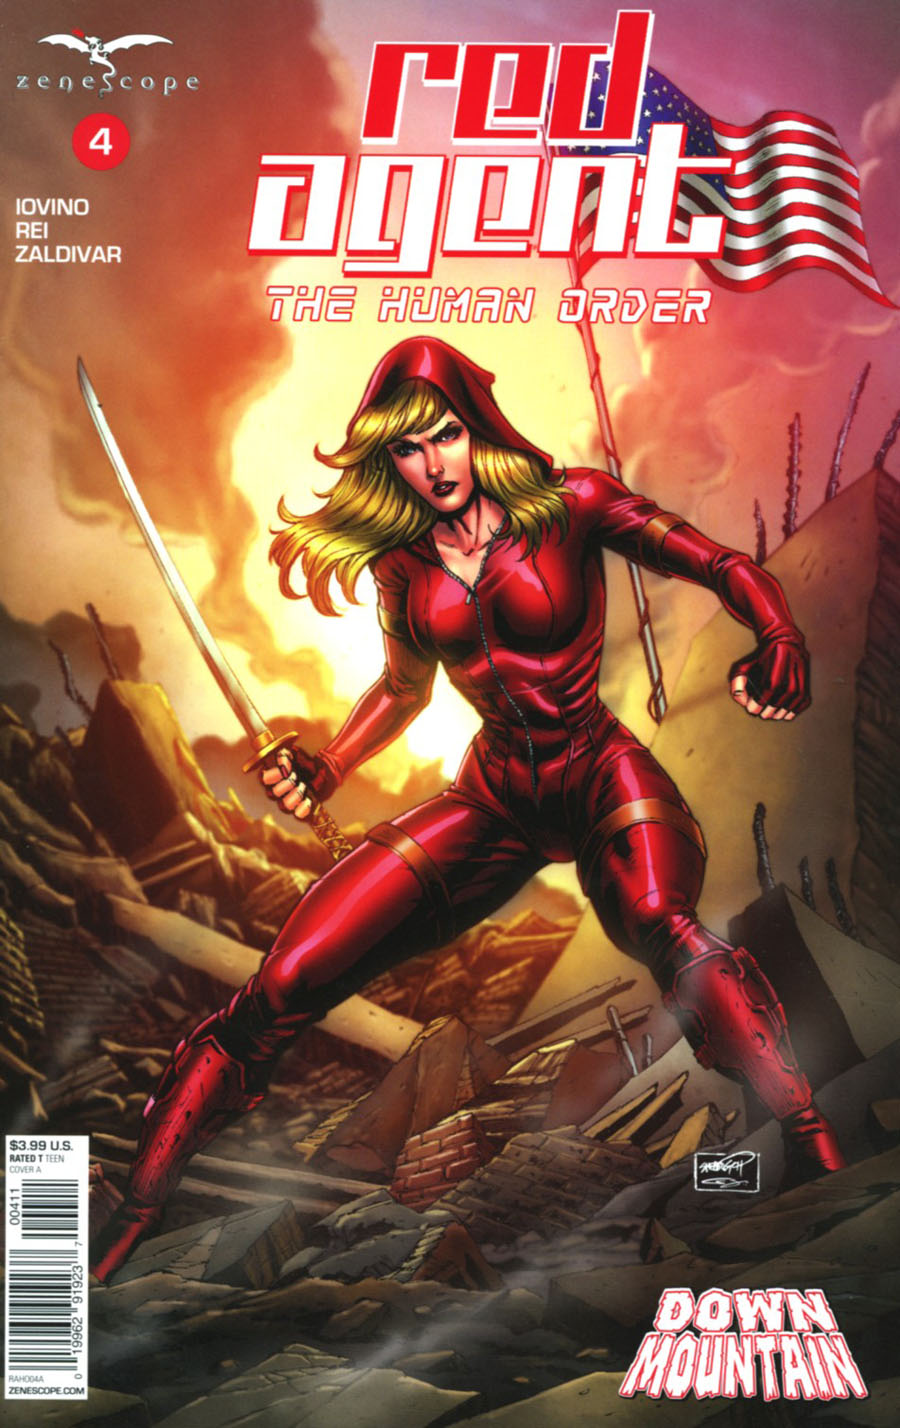 Grimm Fairy Tales Presents Red Agent Human Order #4 Cover A Sheldon Goh